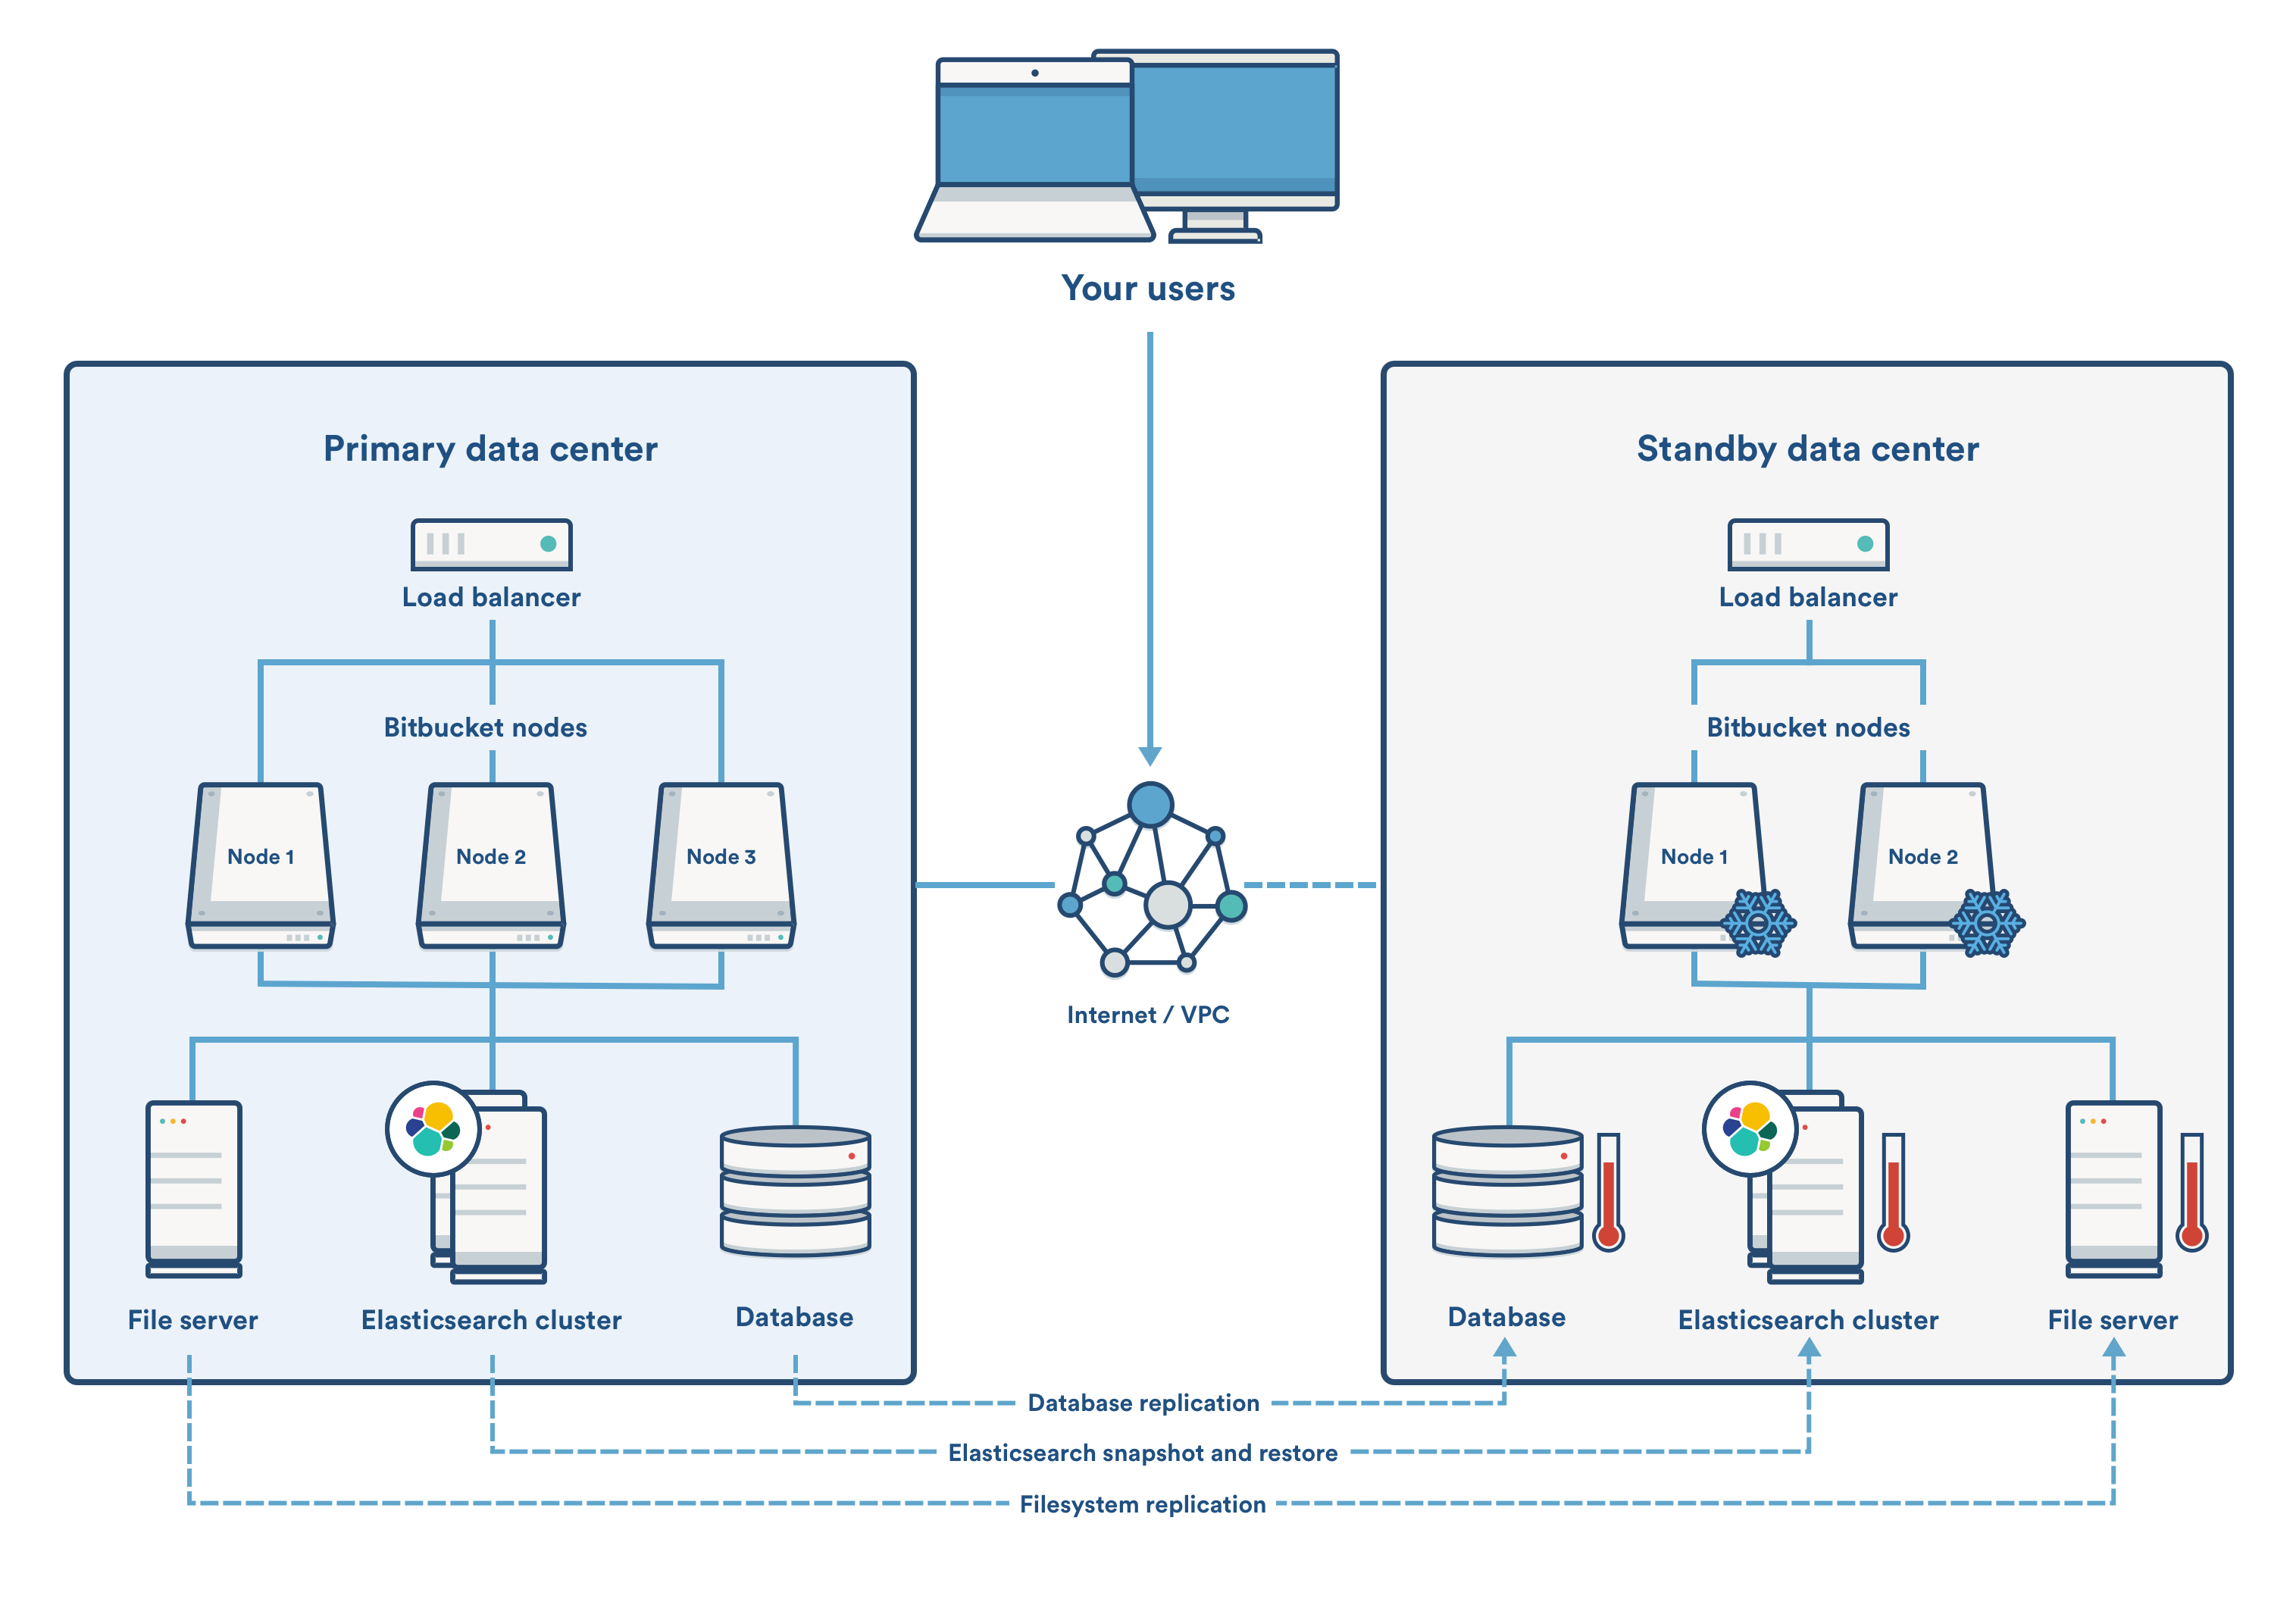 Disaster recovery guide for Bitbucket Data Center ... on